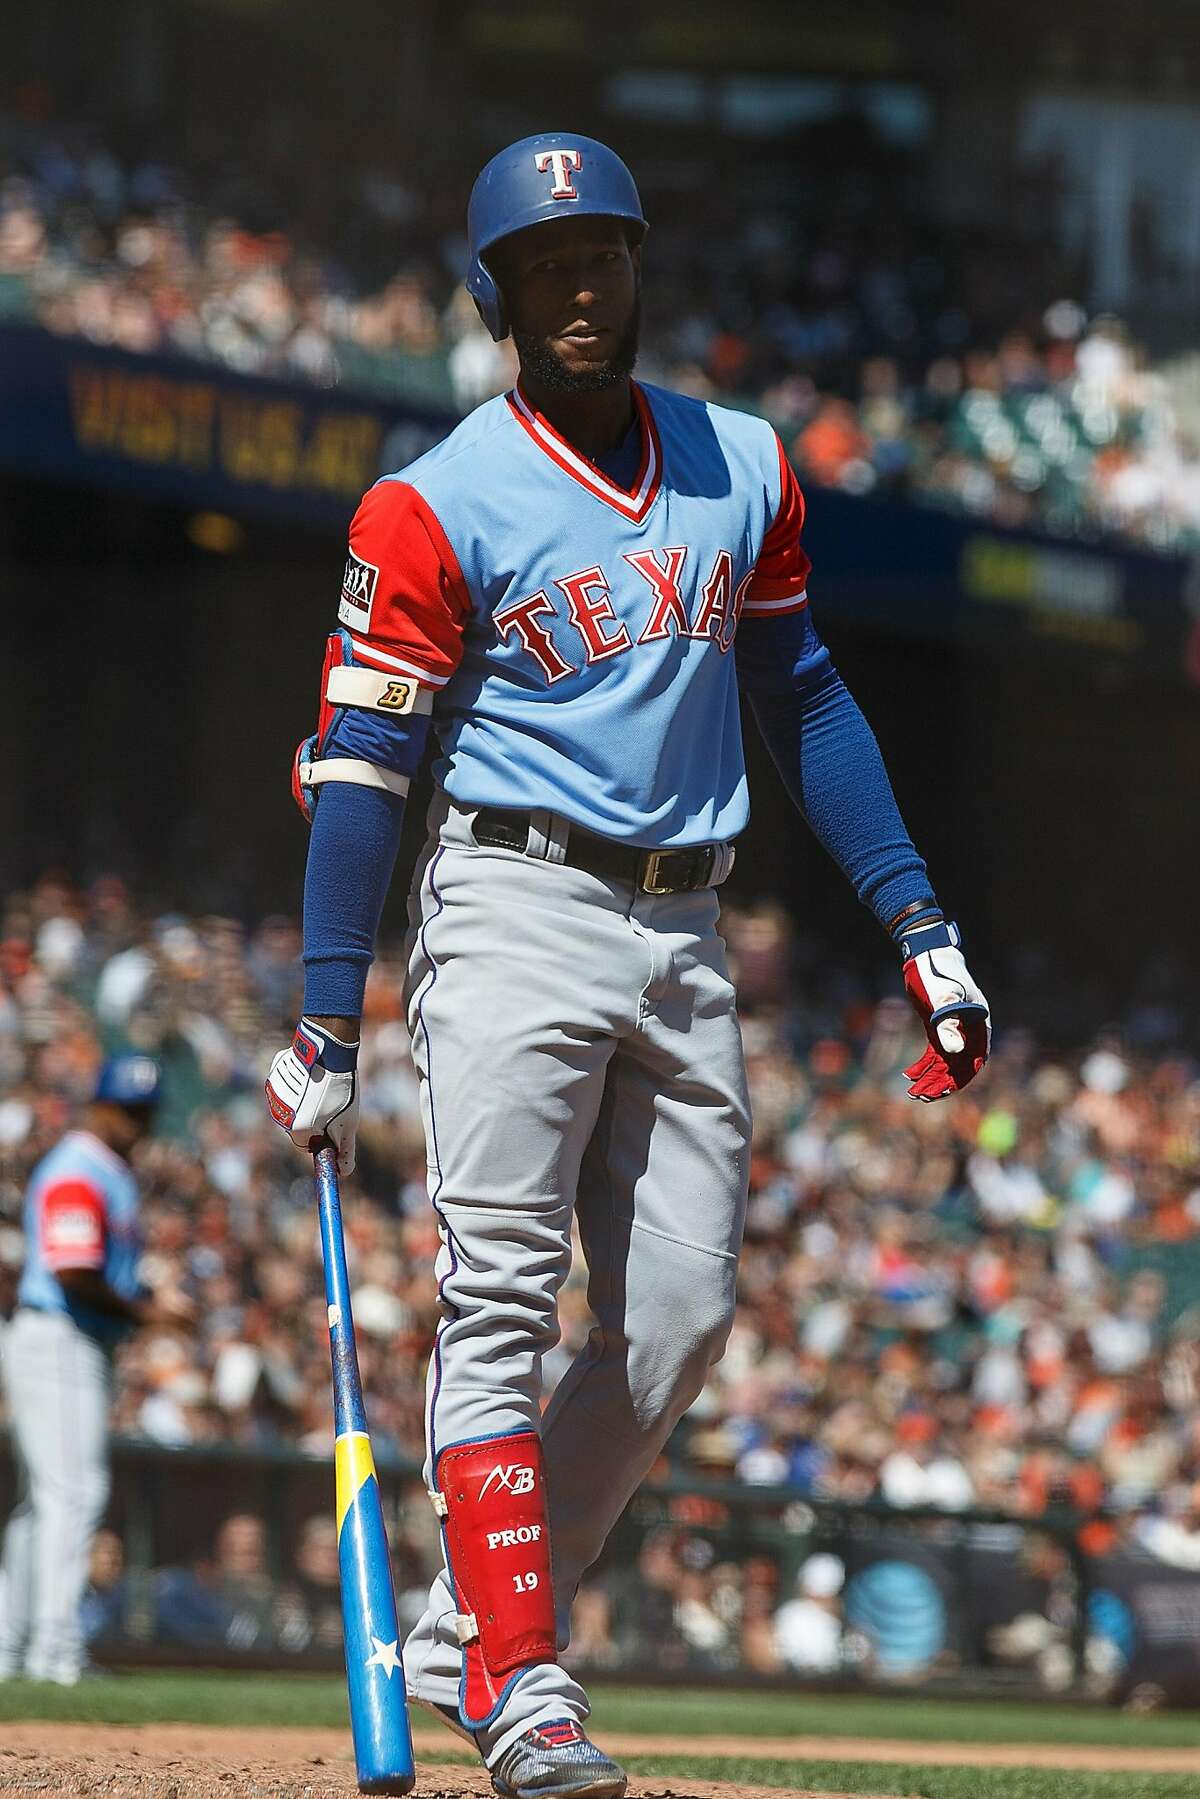 SAN FRANCISCO, CA - AUGUST 26: Jurickson Profar #19 of the Texas Rangers returns to the dugout after striking out against the San Francisco Giants during the eighth inning at AT&T Park on August 26, 2018 in San Francisco, California. All players across MLB will wear nicknames on their backs as well as colorful, non-traditional uniforms featuring alternate designs inspired by youth-league uniforms during Players Weekend. (Photo by Jason O. Watson/Getty Images)